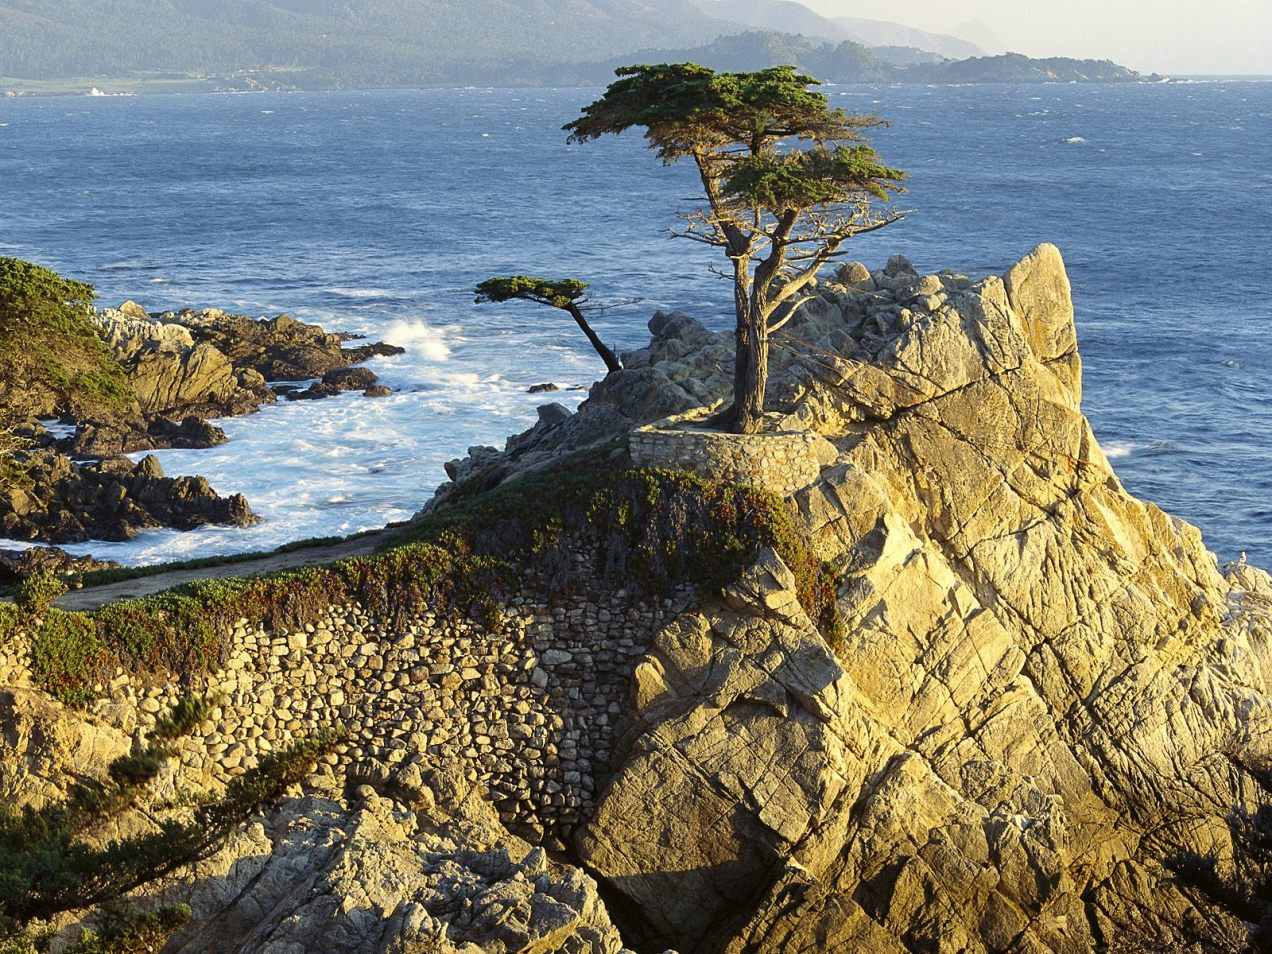 World_USA_Lono_Cypress___Pebble_Beach___California___USA_008934_